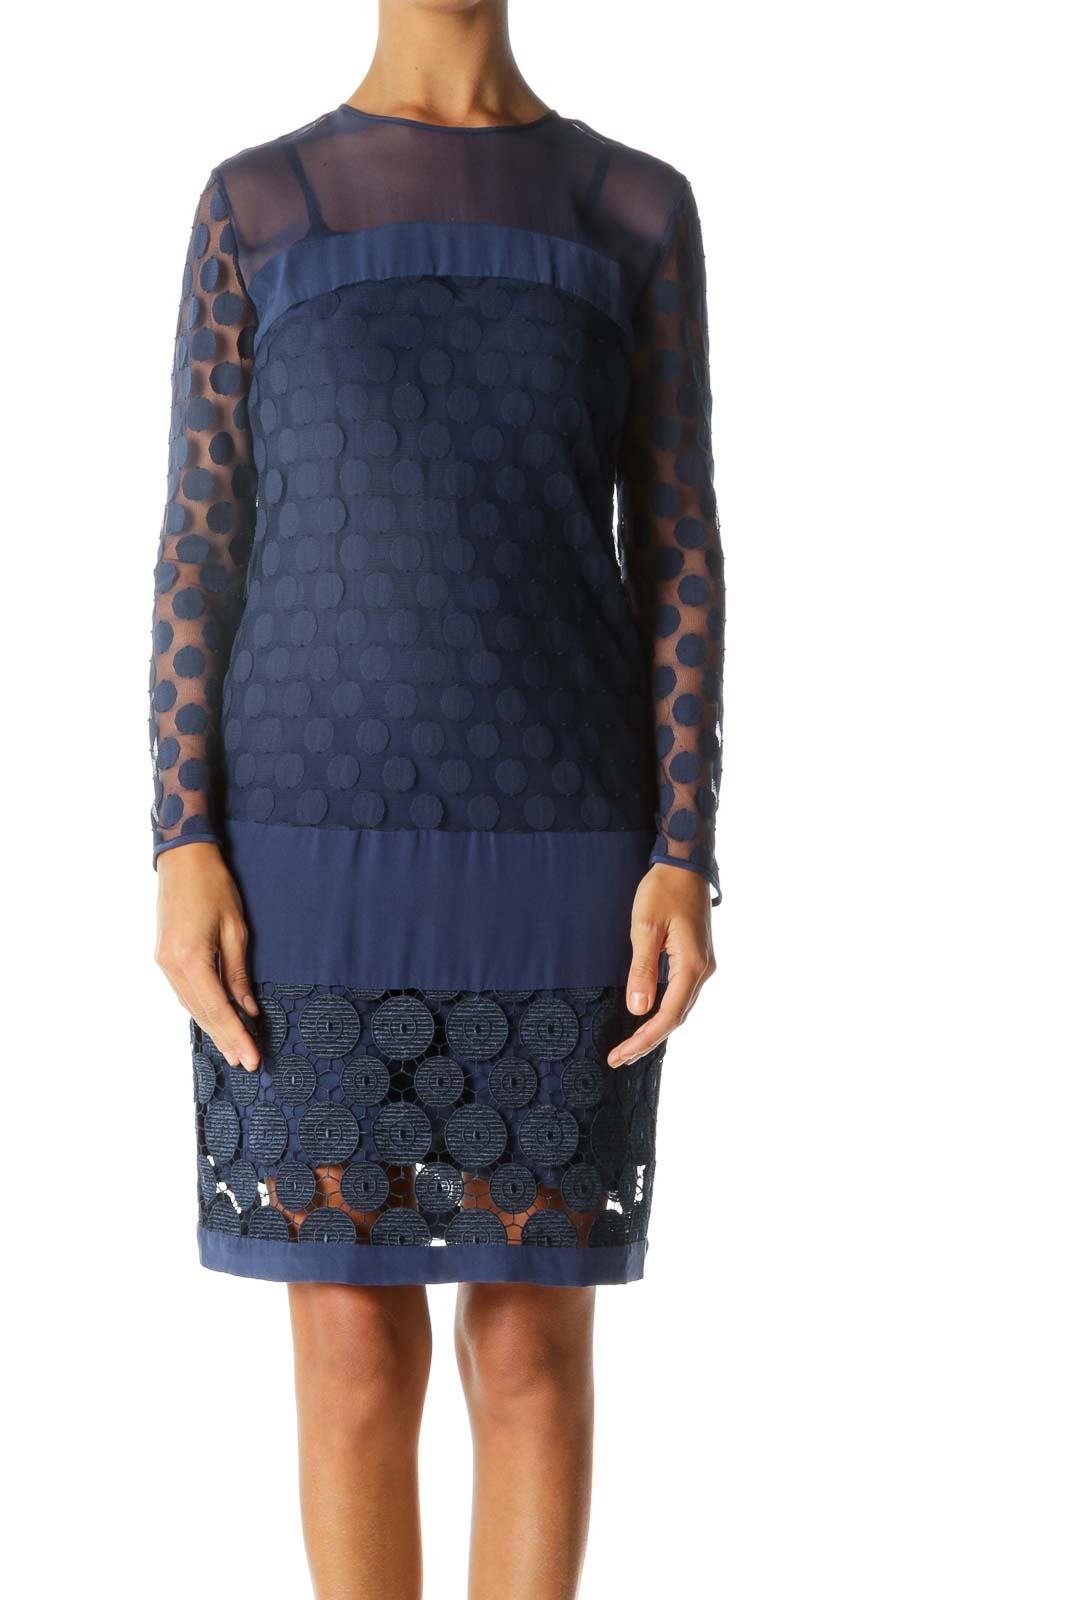 Blue Appliques Knitted See Through Long Sleeve Dress